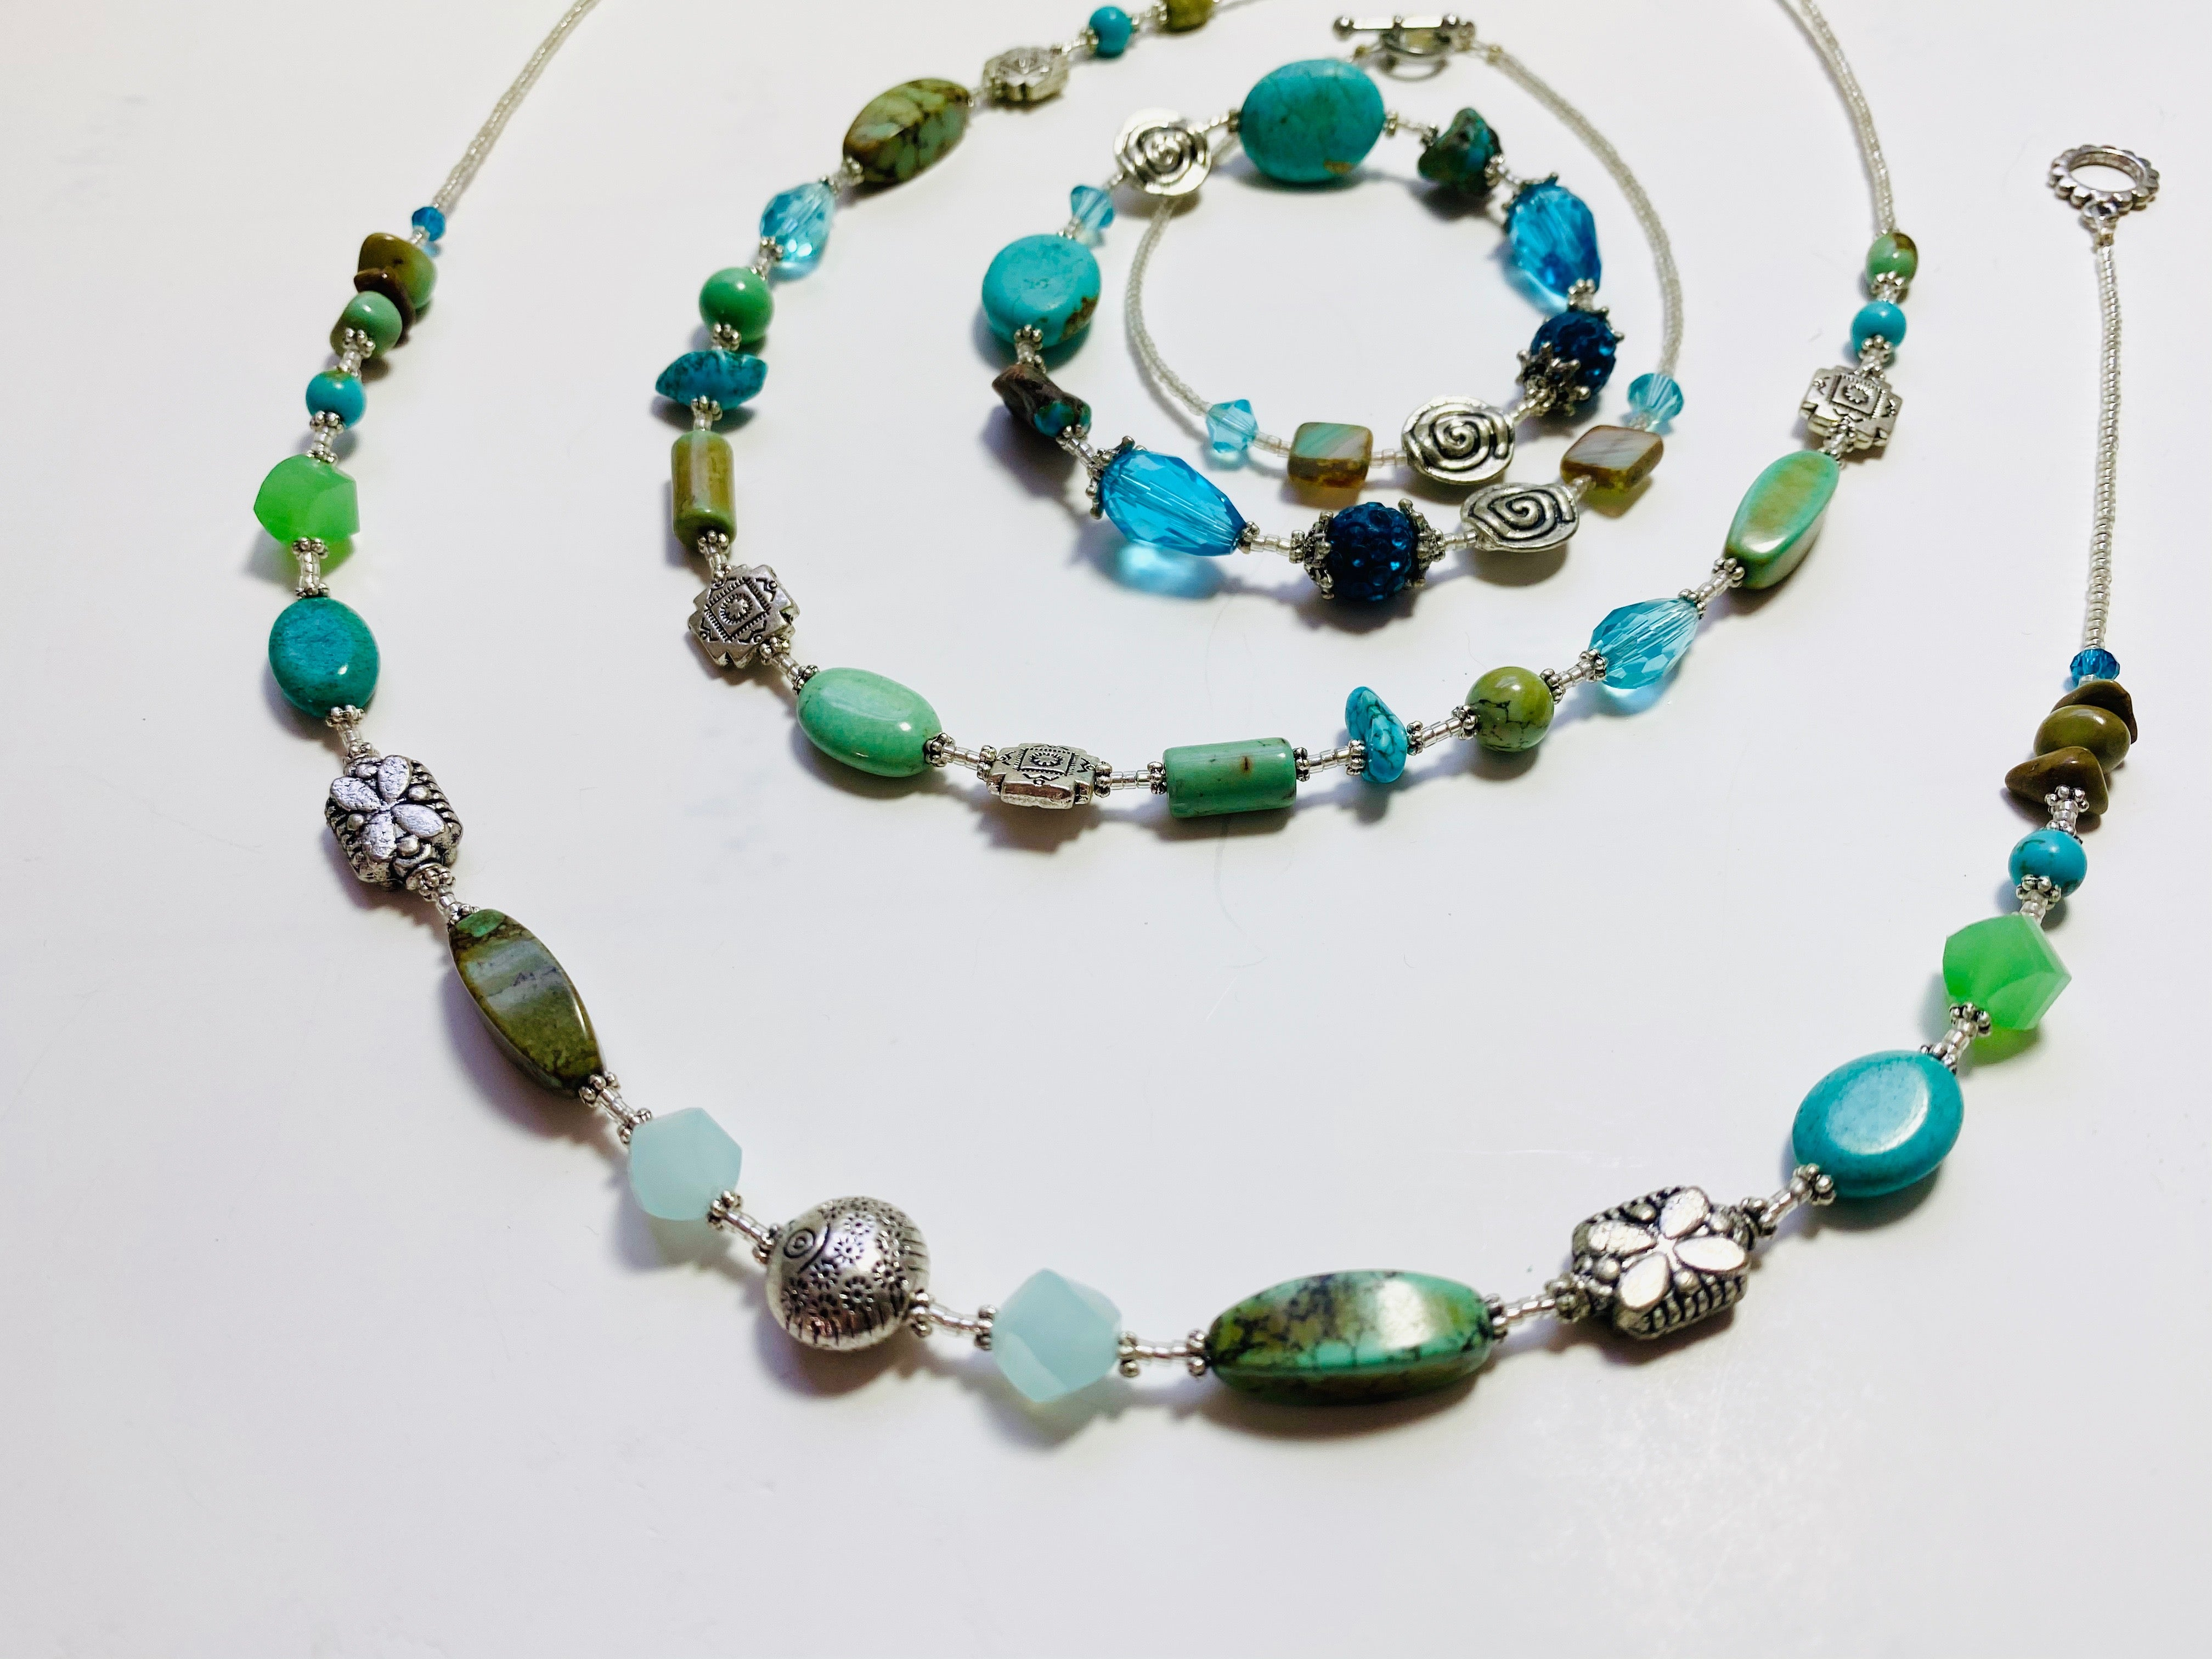 10 - Turquoise Collection Necklace